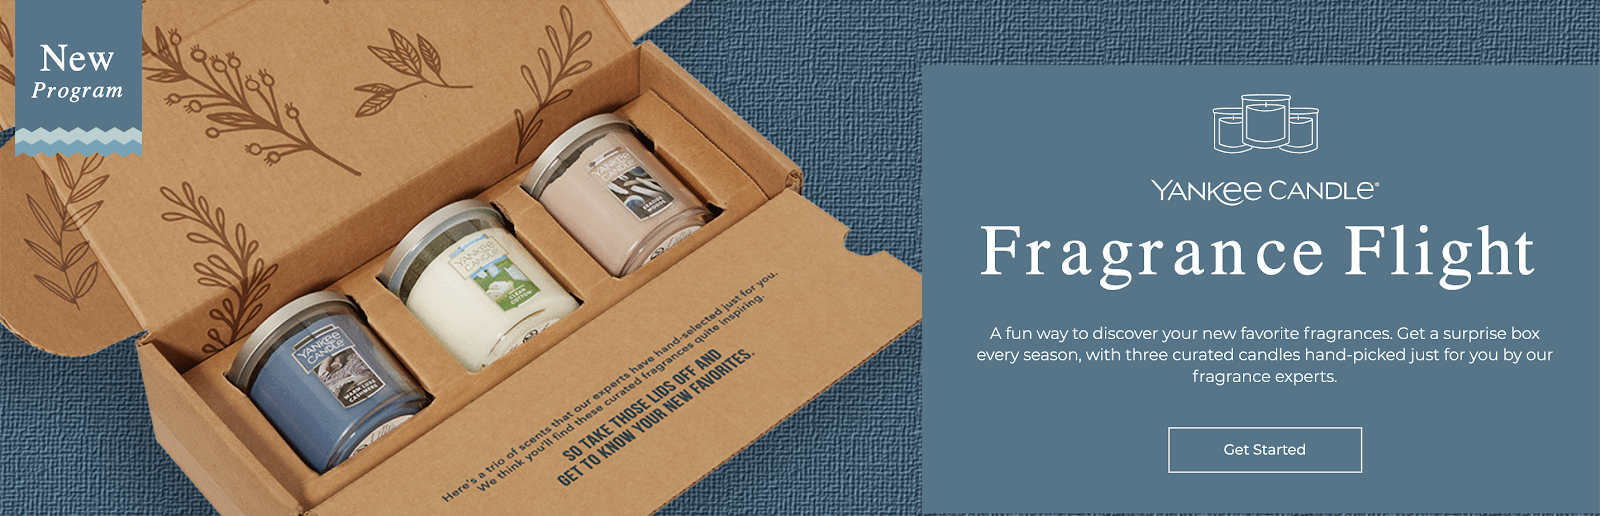 Image of Yankee Candle's subscription program on their website